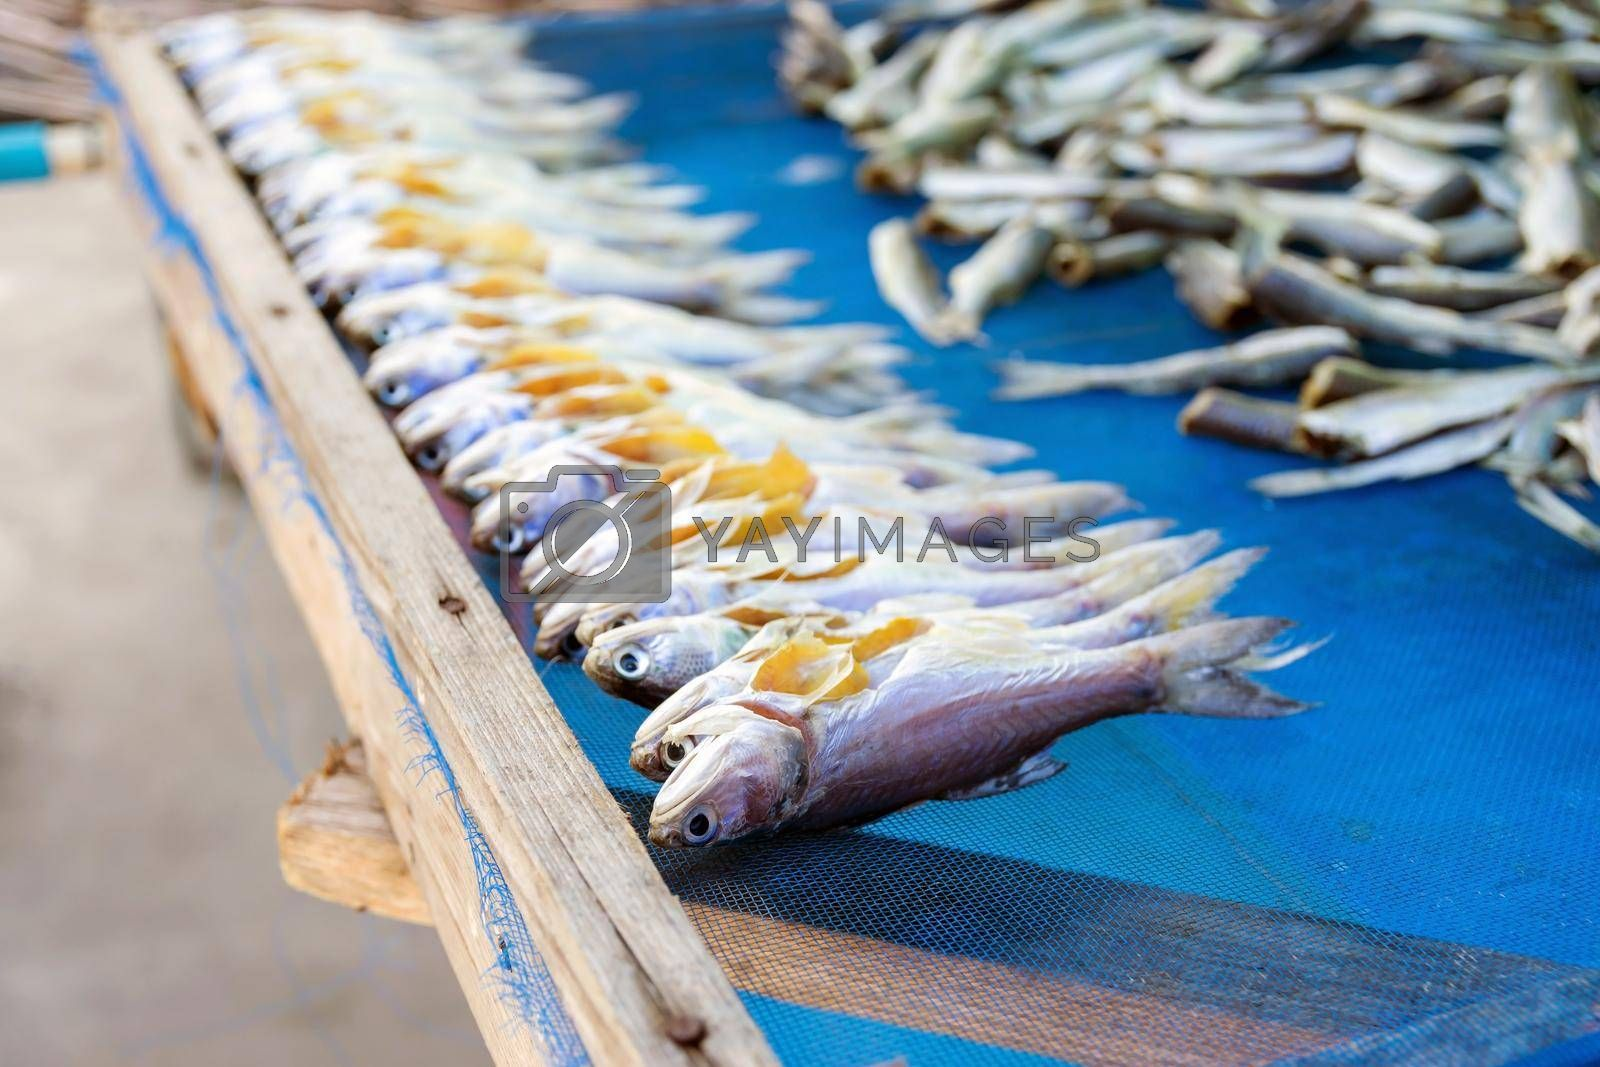 Group of sea fish dried on nets for sale to tourists in the market.